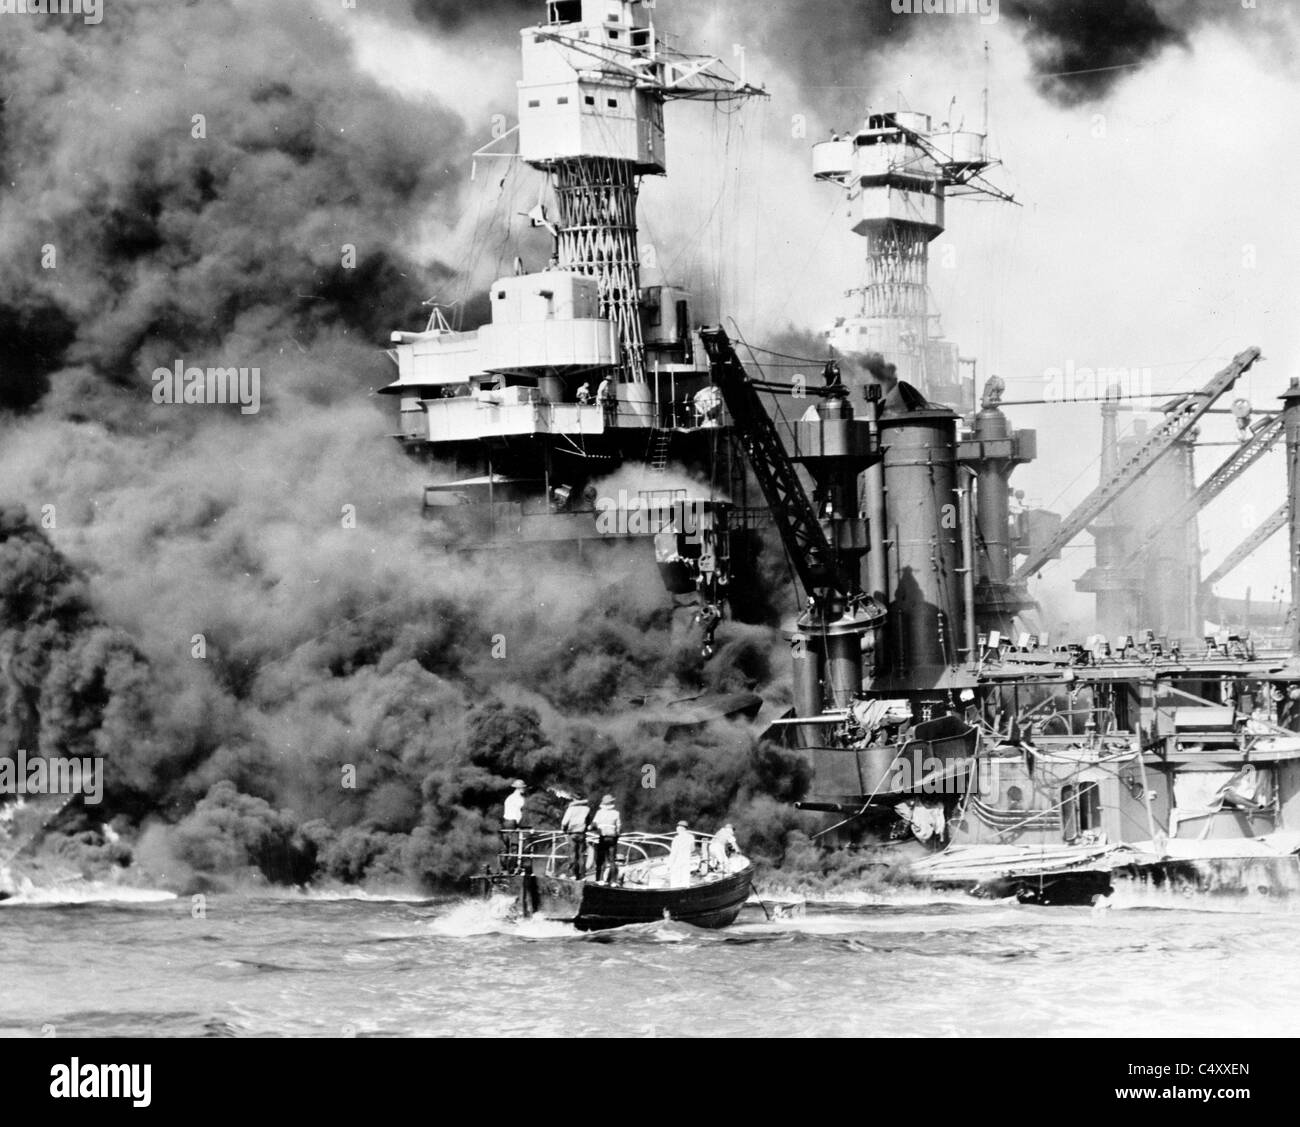 USS West Virginia burning after the attack on at Pearl Harbor, Hawaii. Stock Photo